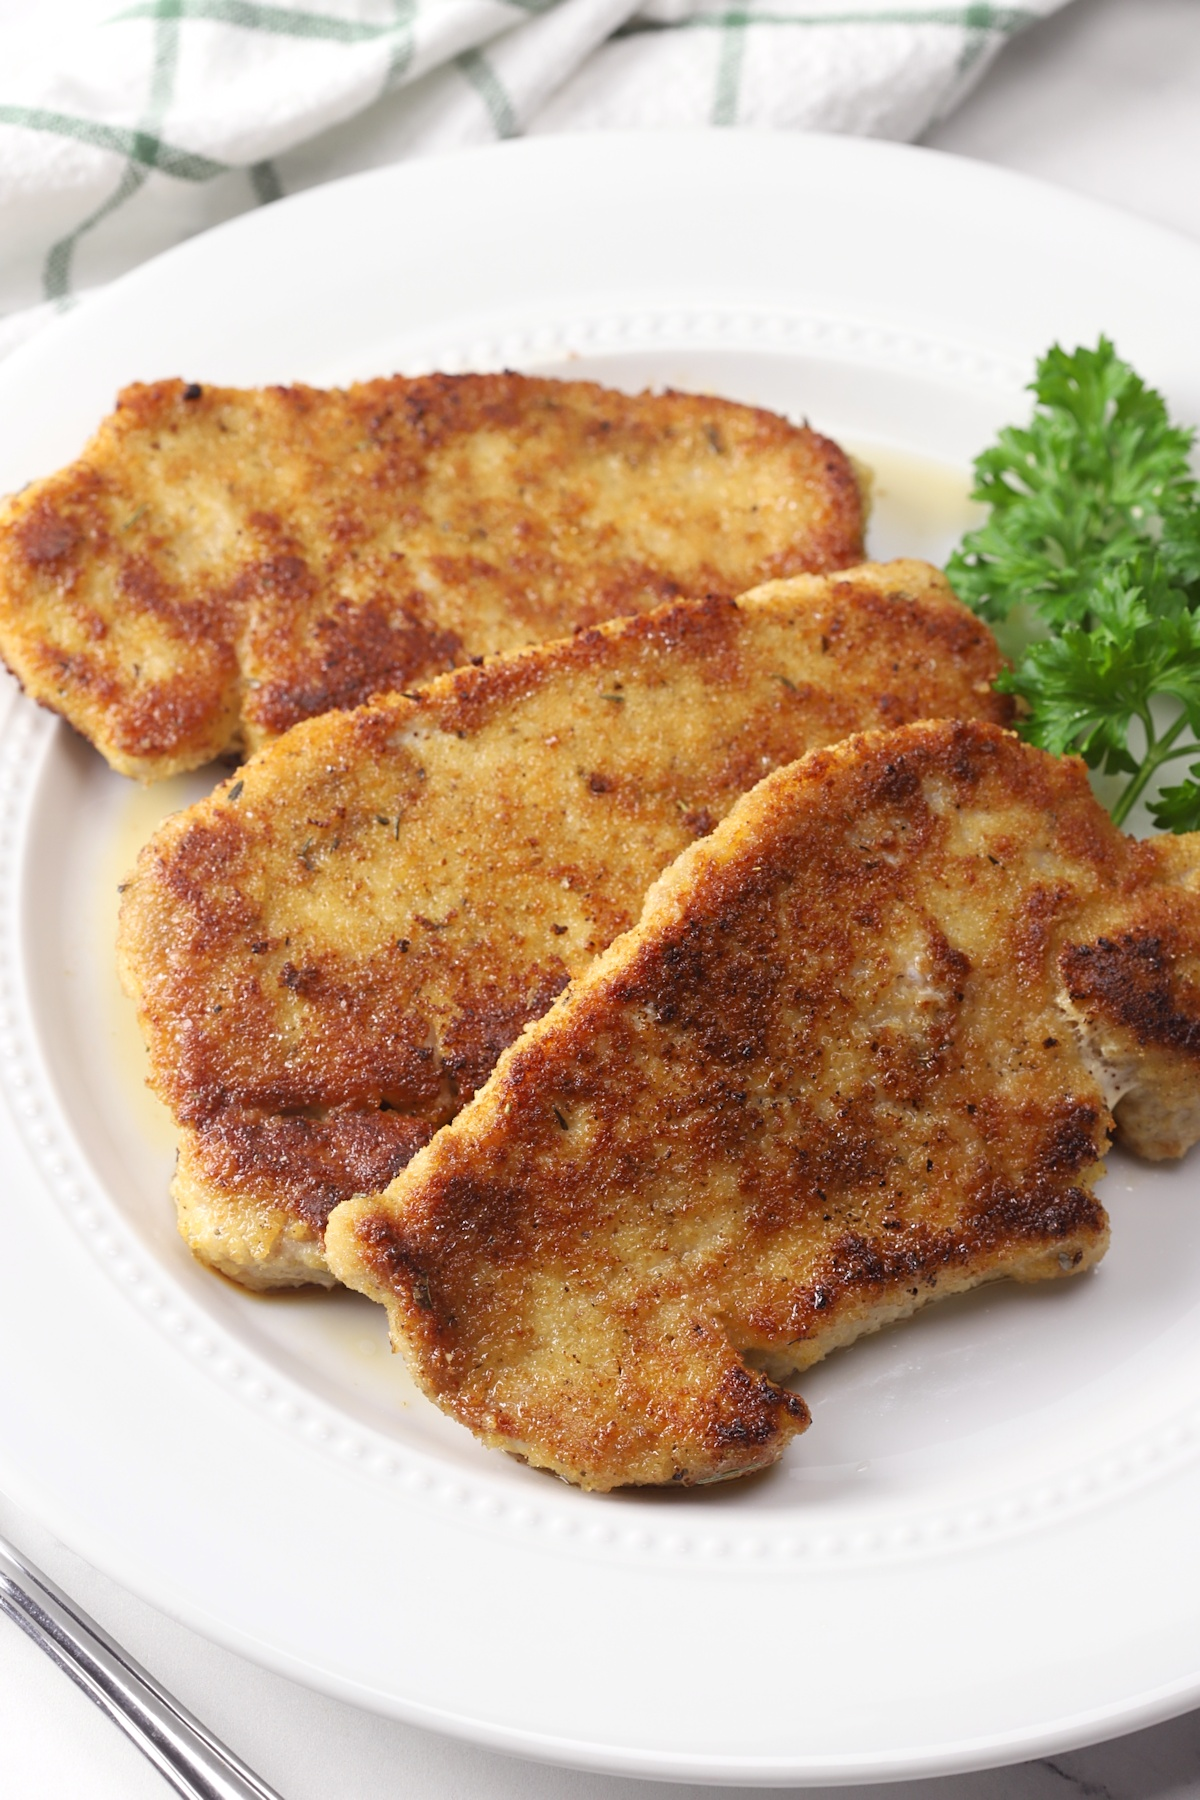 Three breaded pork chops on a white plate.